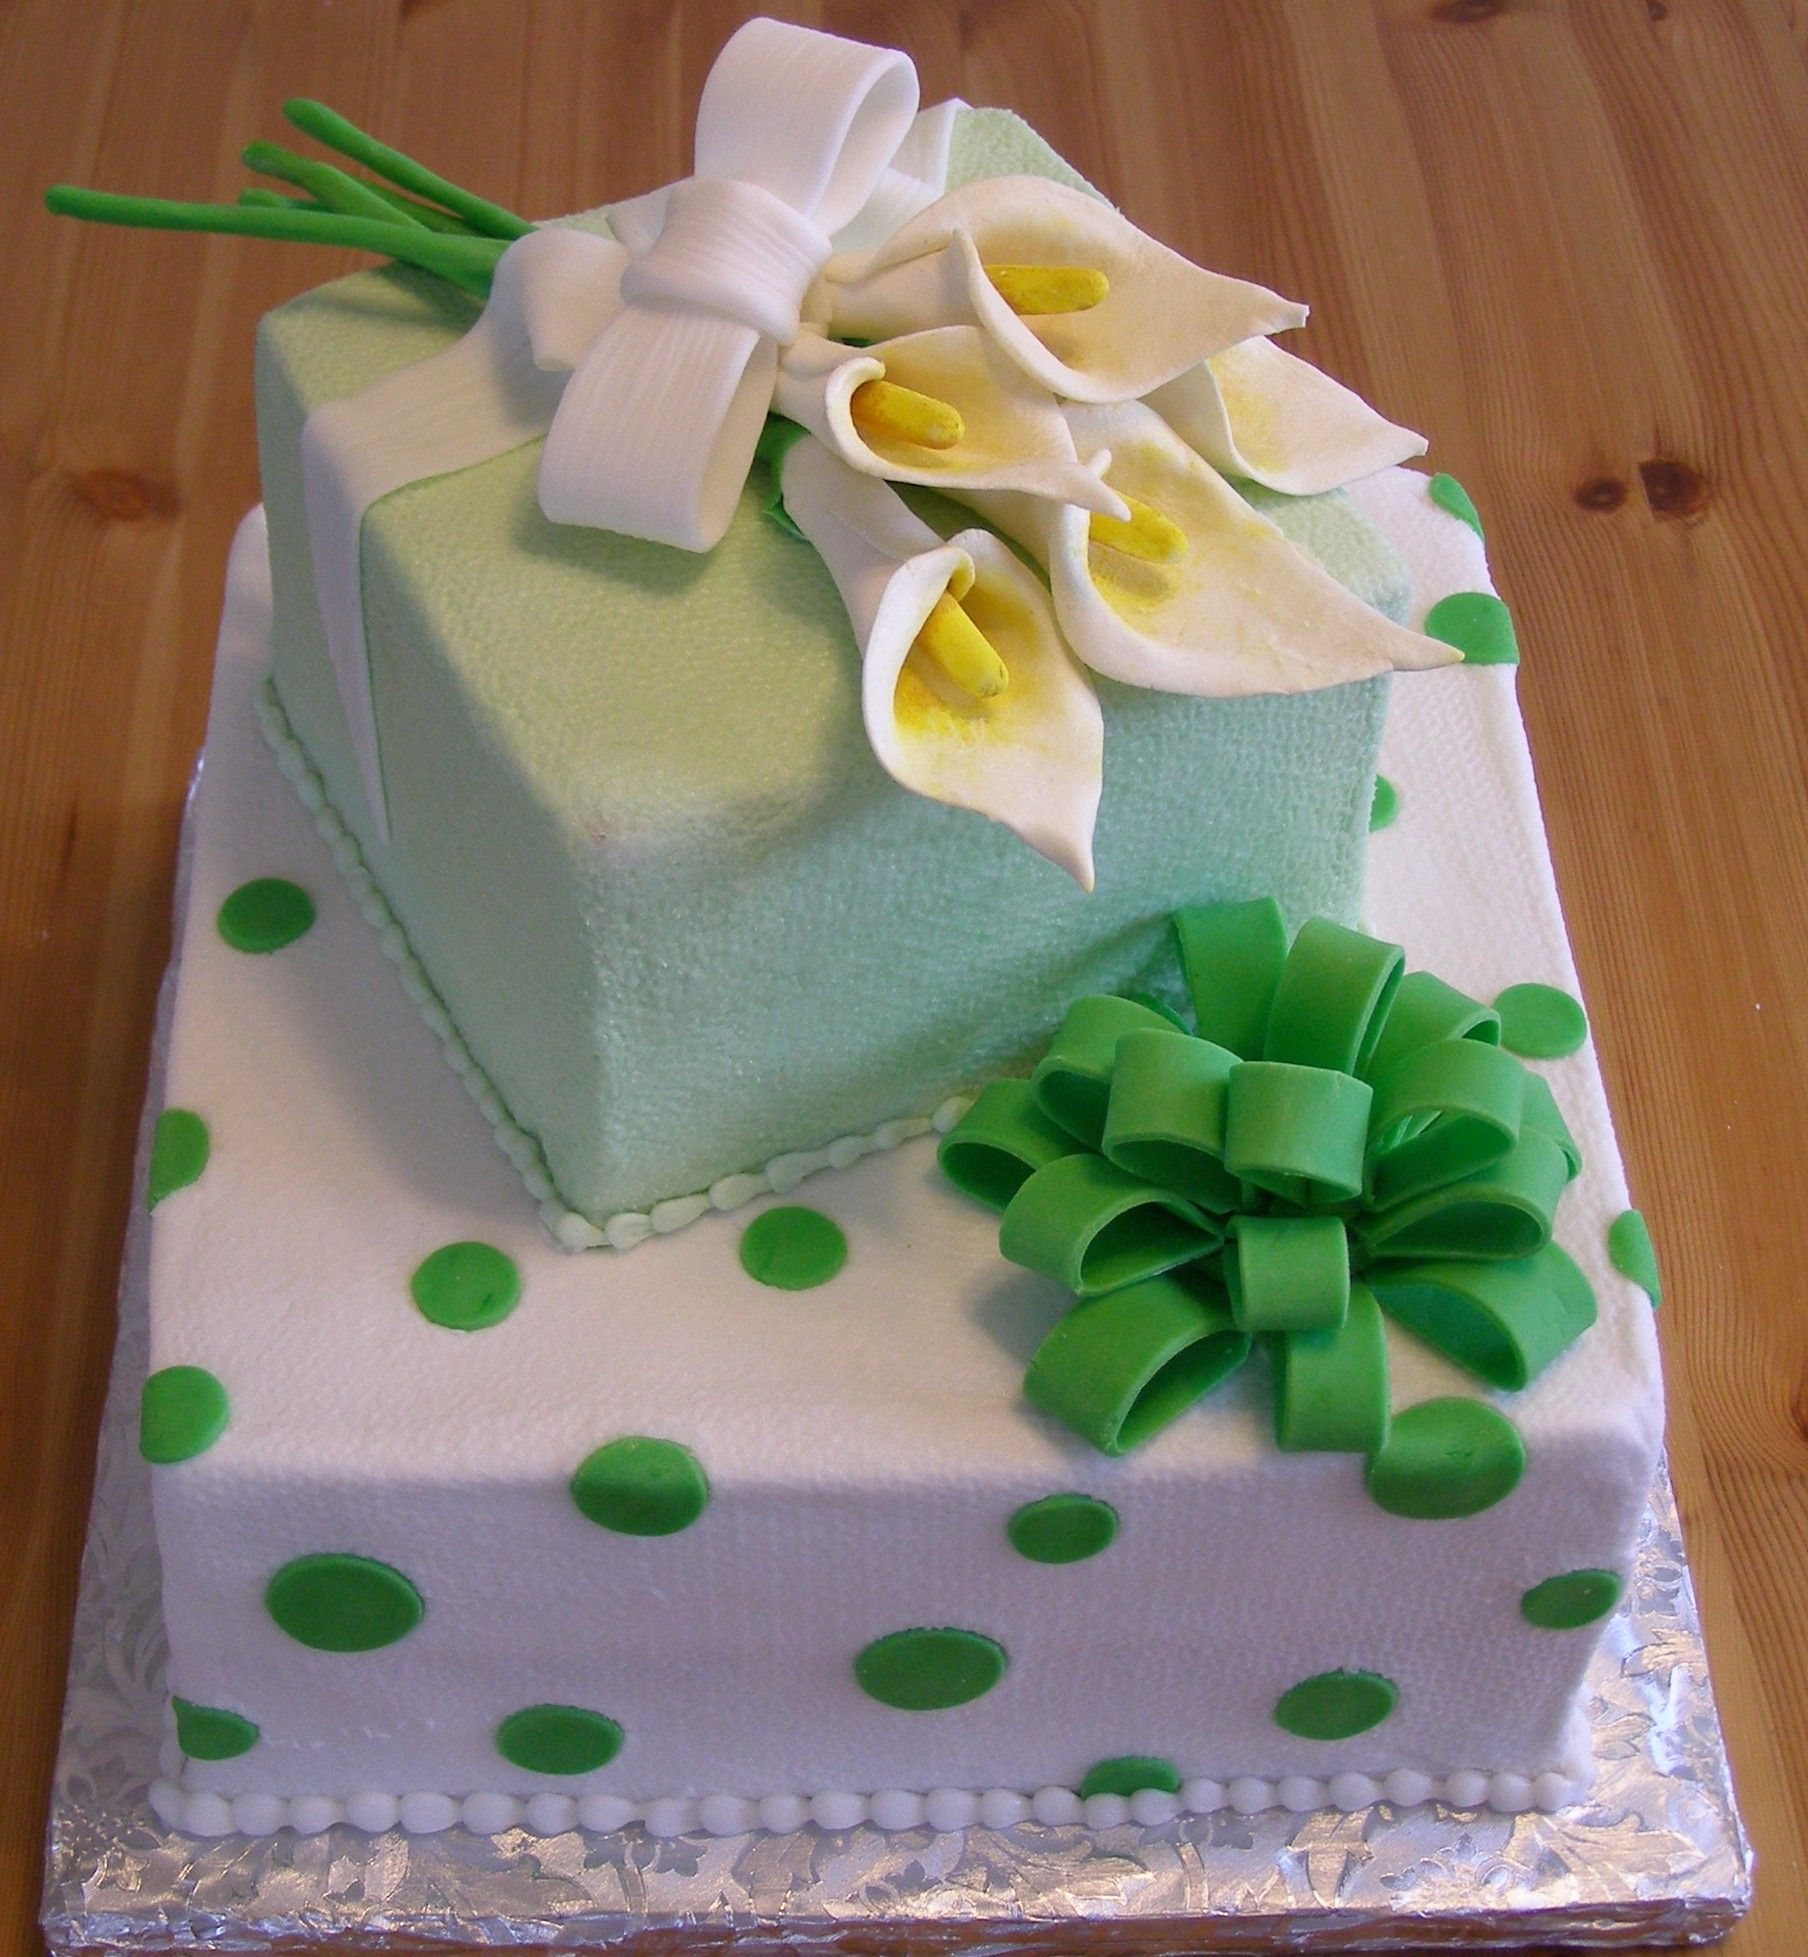 I live calla lilies on cakes They always look so good birthday